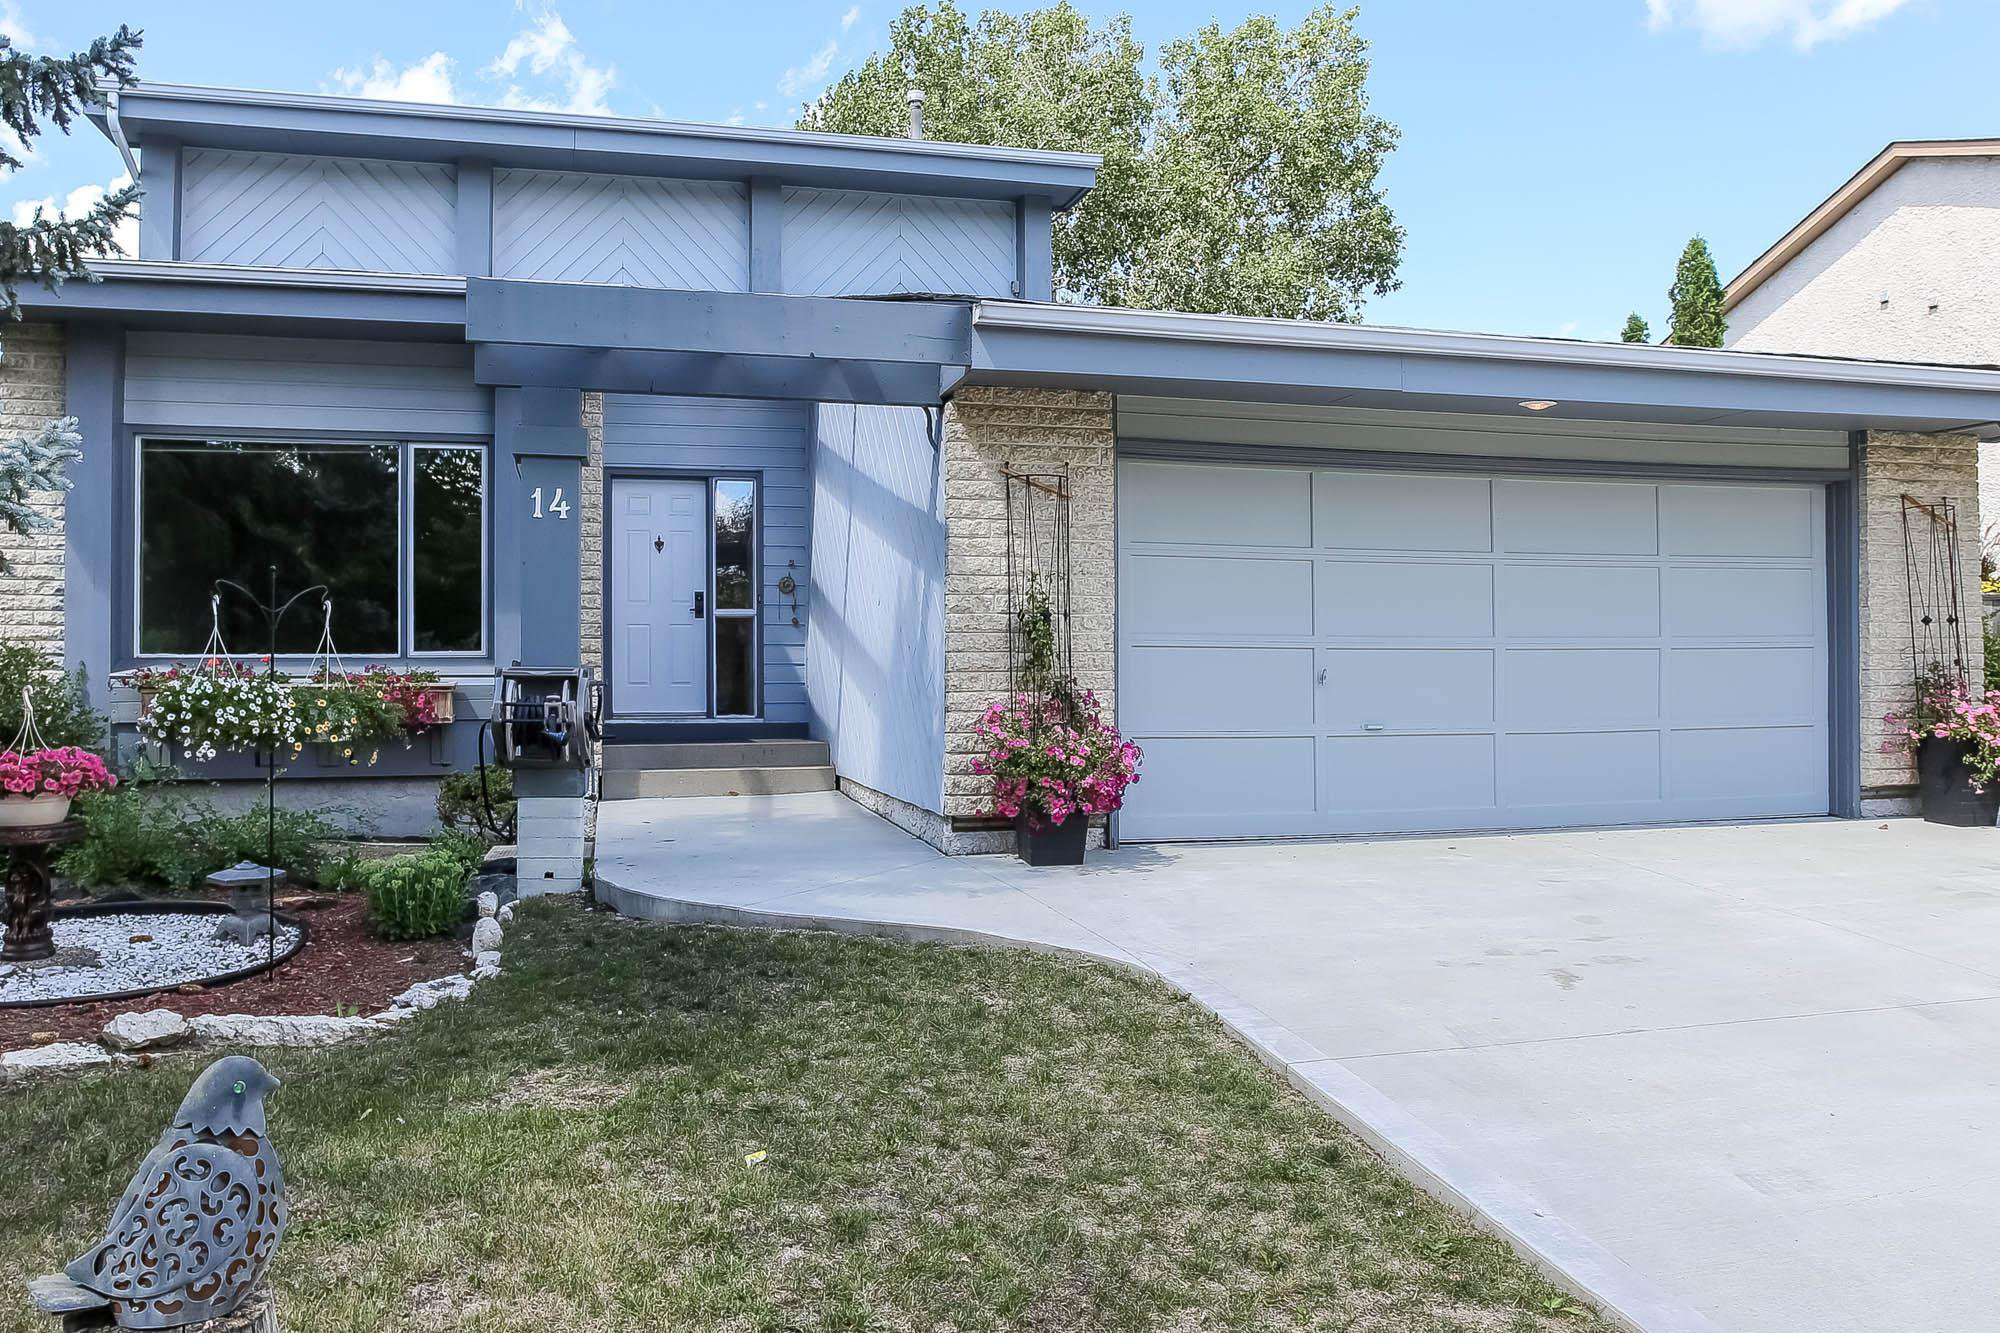 Photo 34: Photos: 14 Torrington Road in Winnipeg: Whyte Ridge Single Family Detached for sale (1P)  : MLS®# 202017383